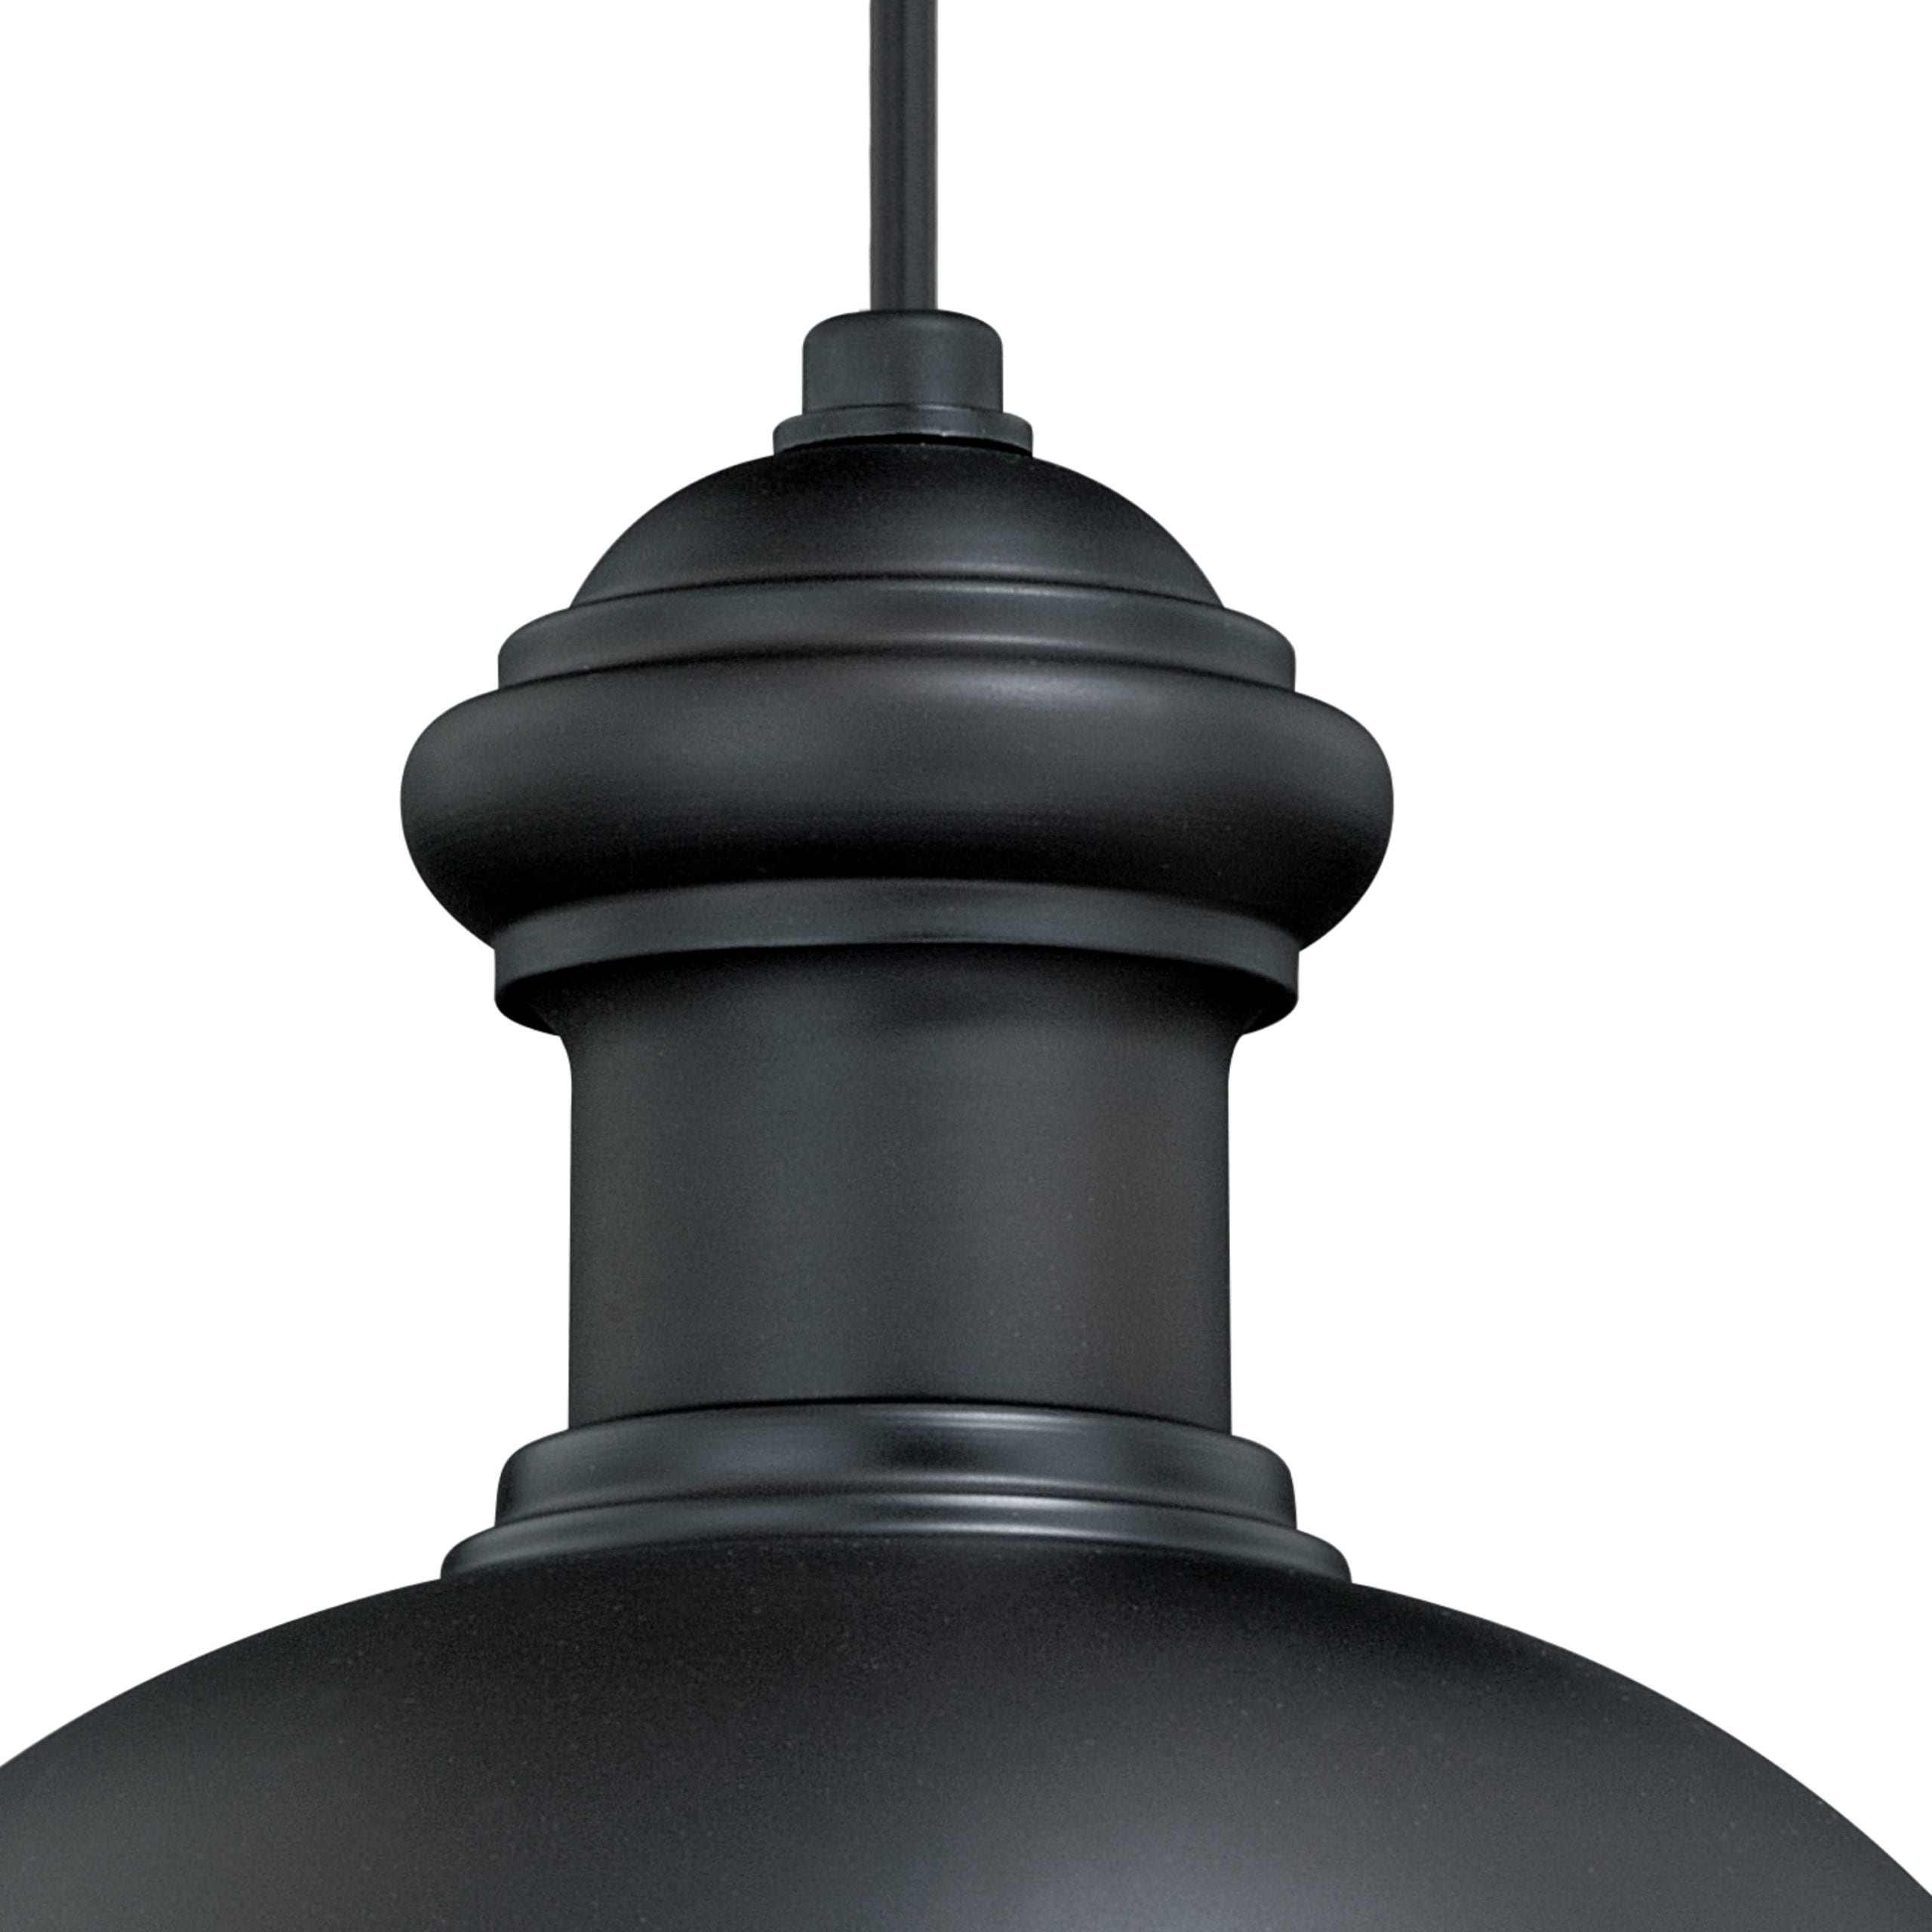 Ranbir Oil Burnished Bronze Outdoor Barn Lights With Dusk To Dawn For Most Popular Franklin 10 In Outdoor Pendant Oil Burnished Bronze – Vaxcel (View 14 of 20)